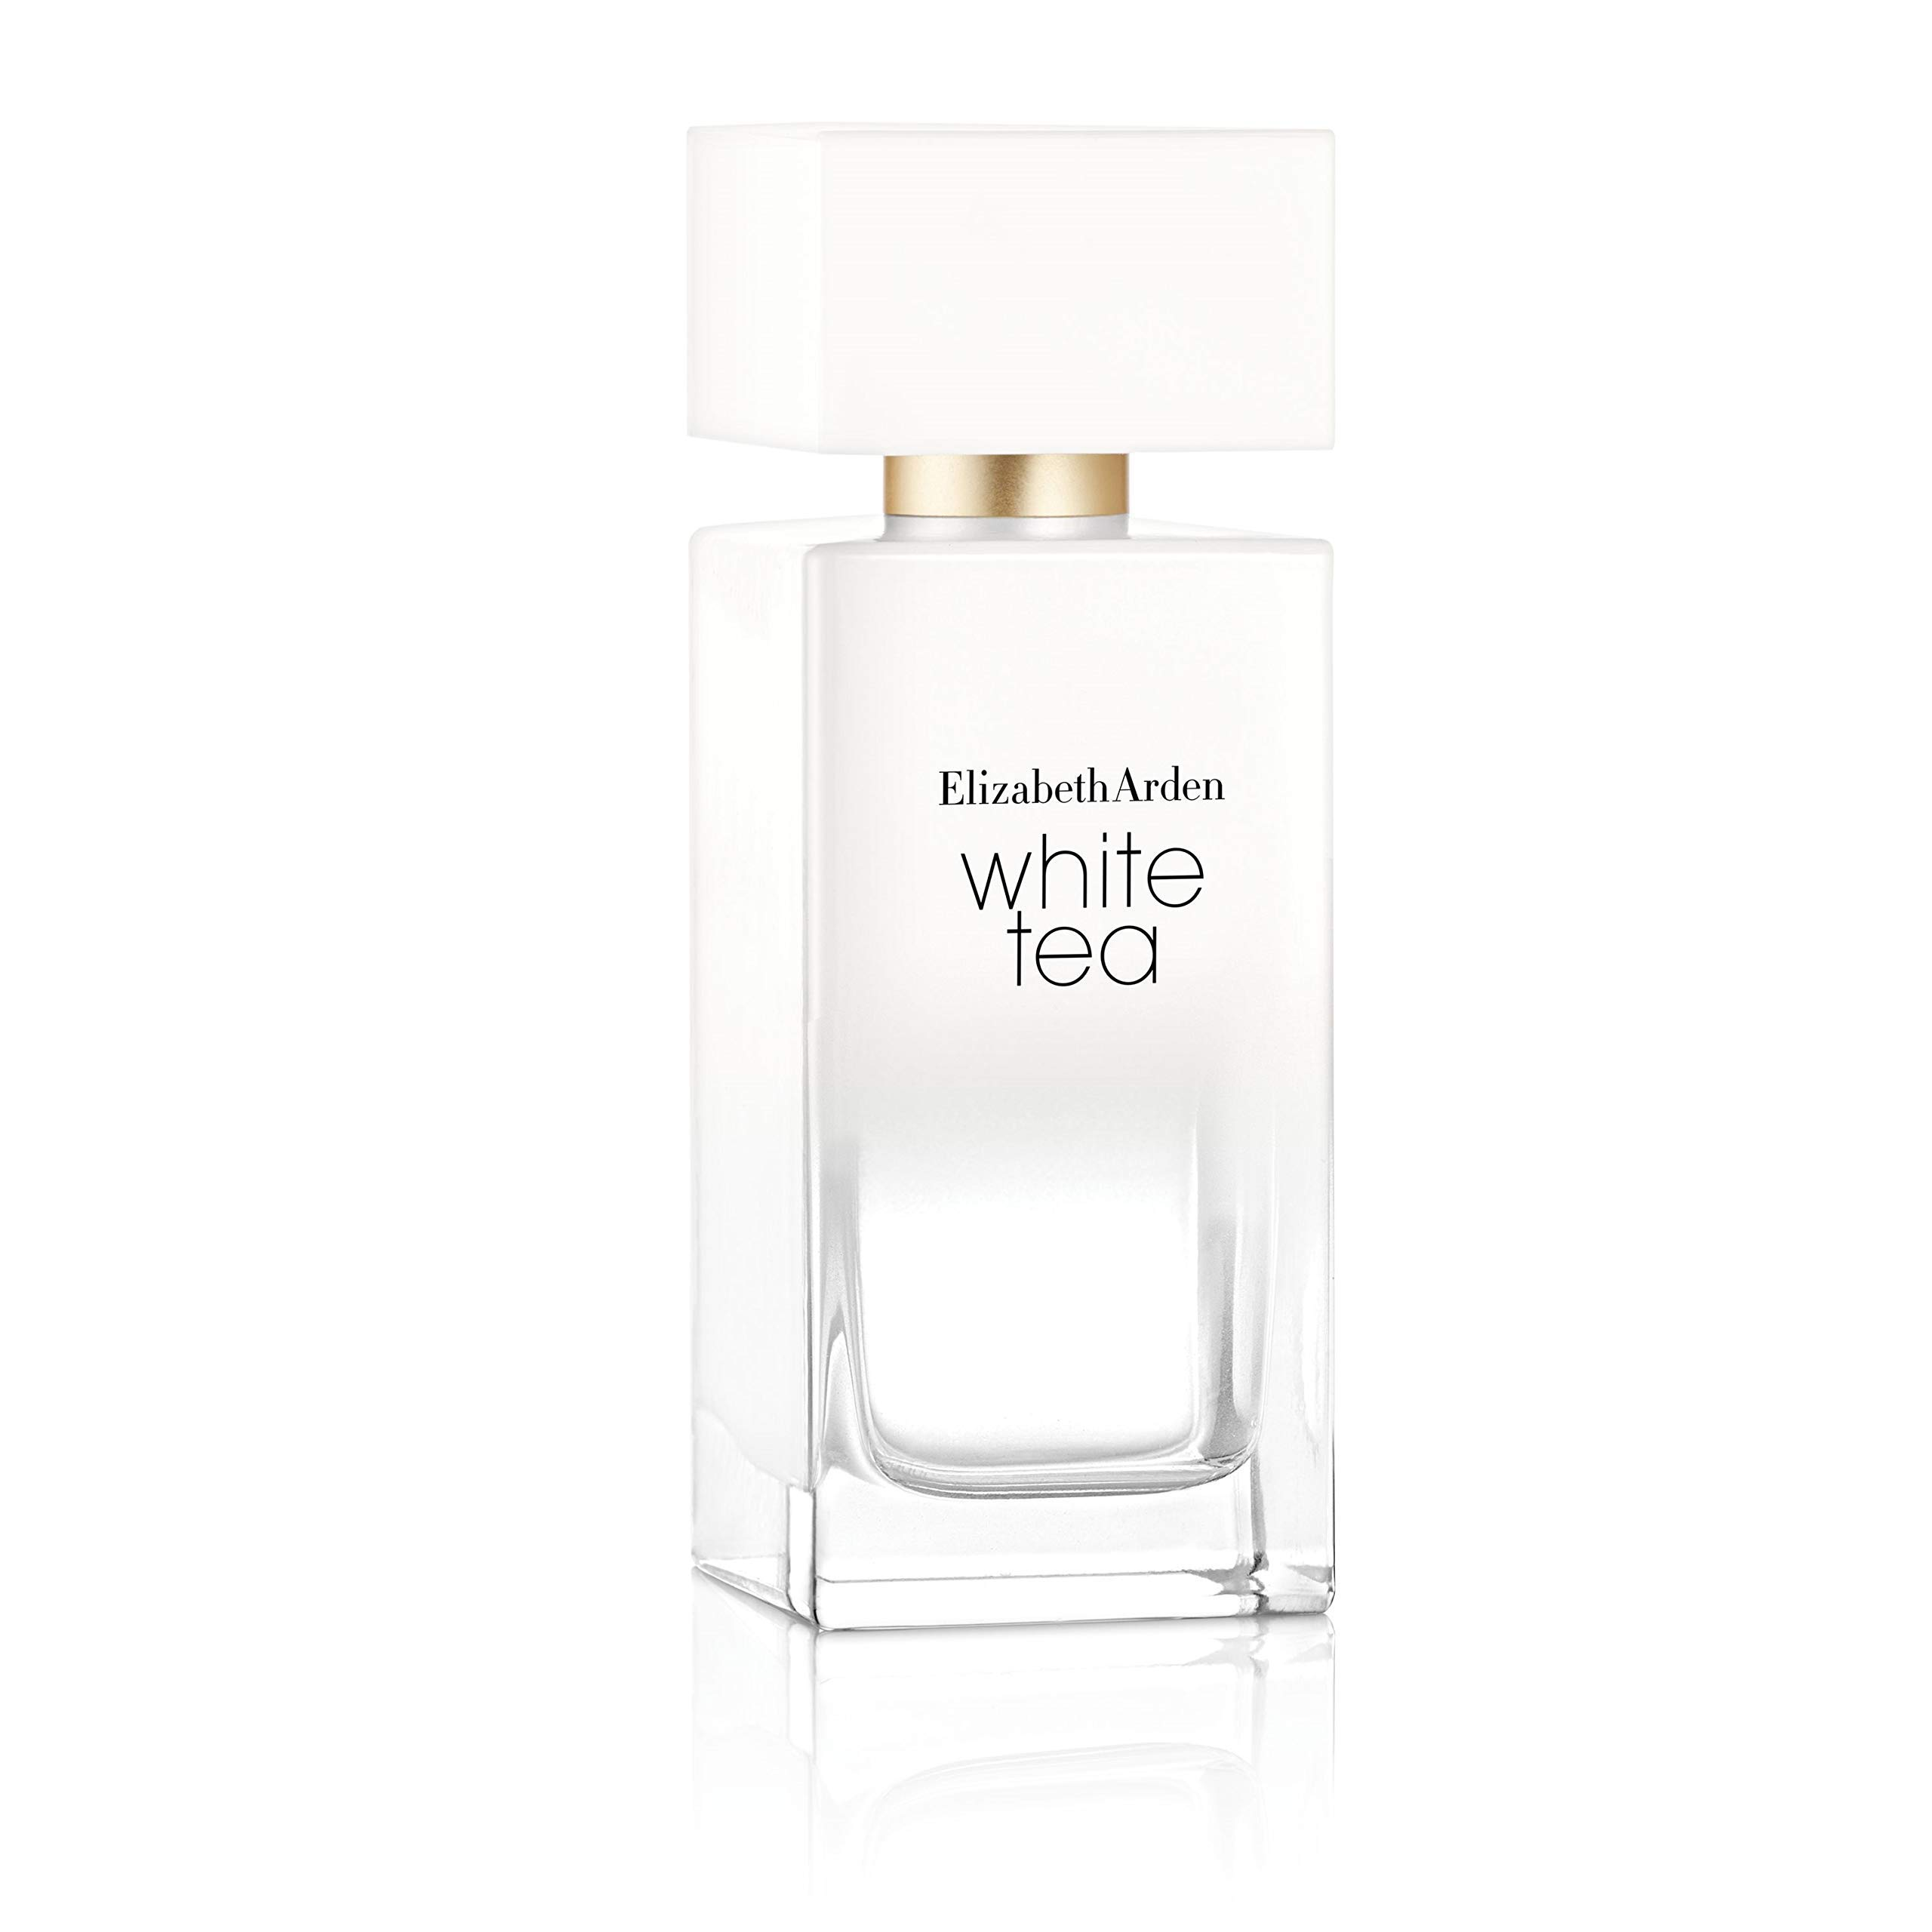 Elizabeth Arden White Tea Eau de Toilette Spray, 50ml